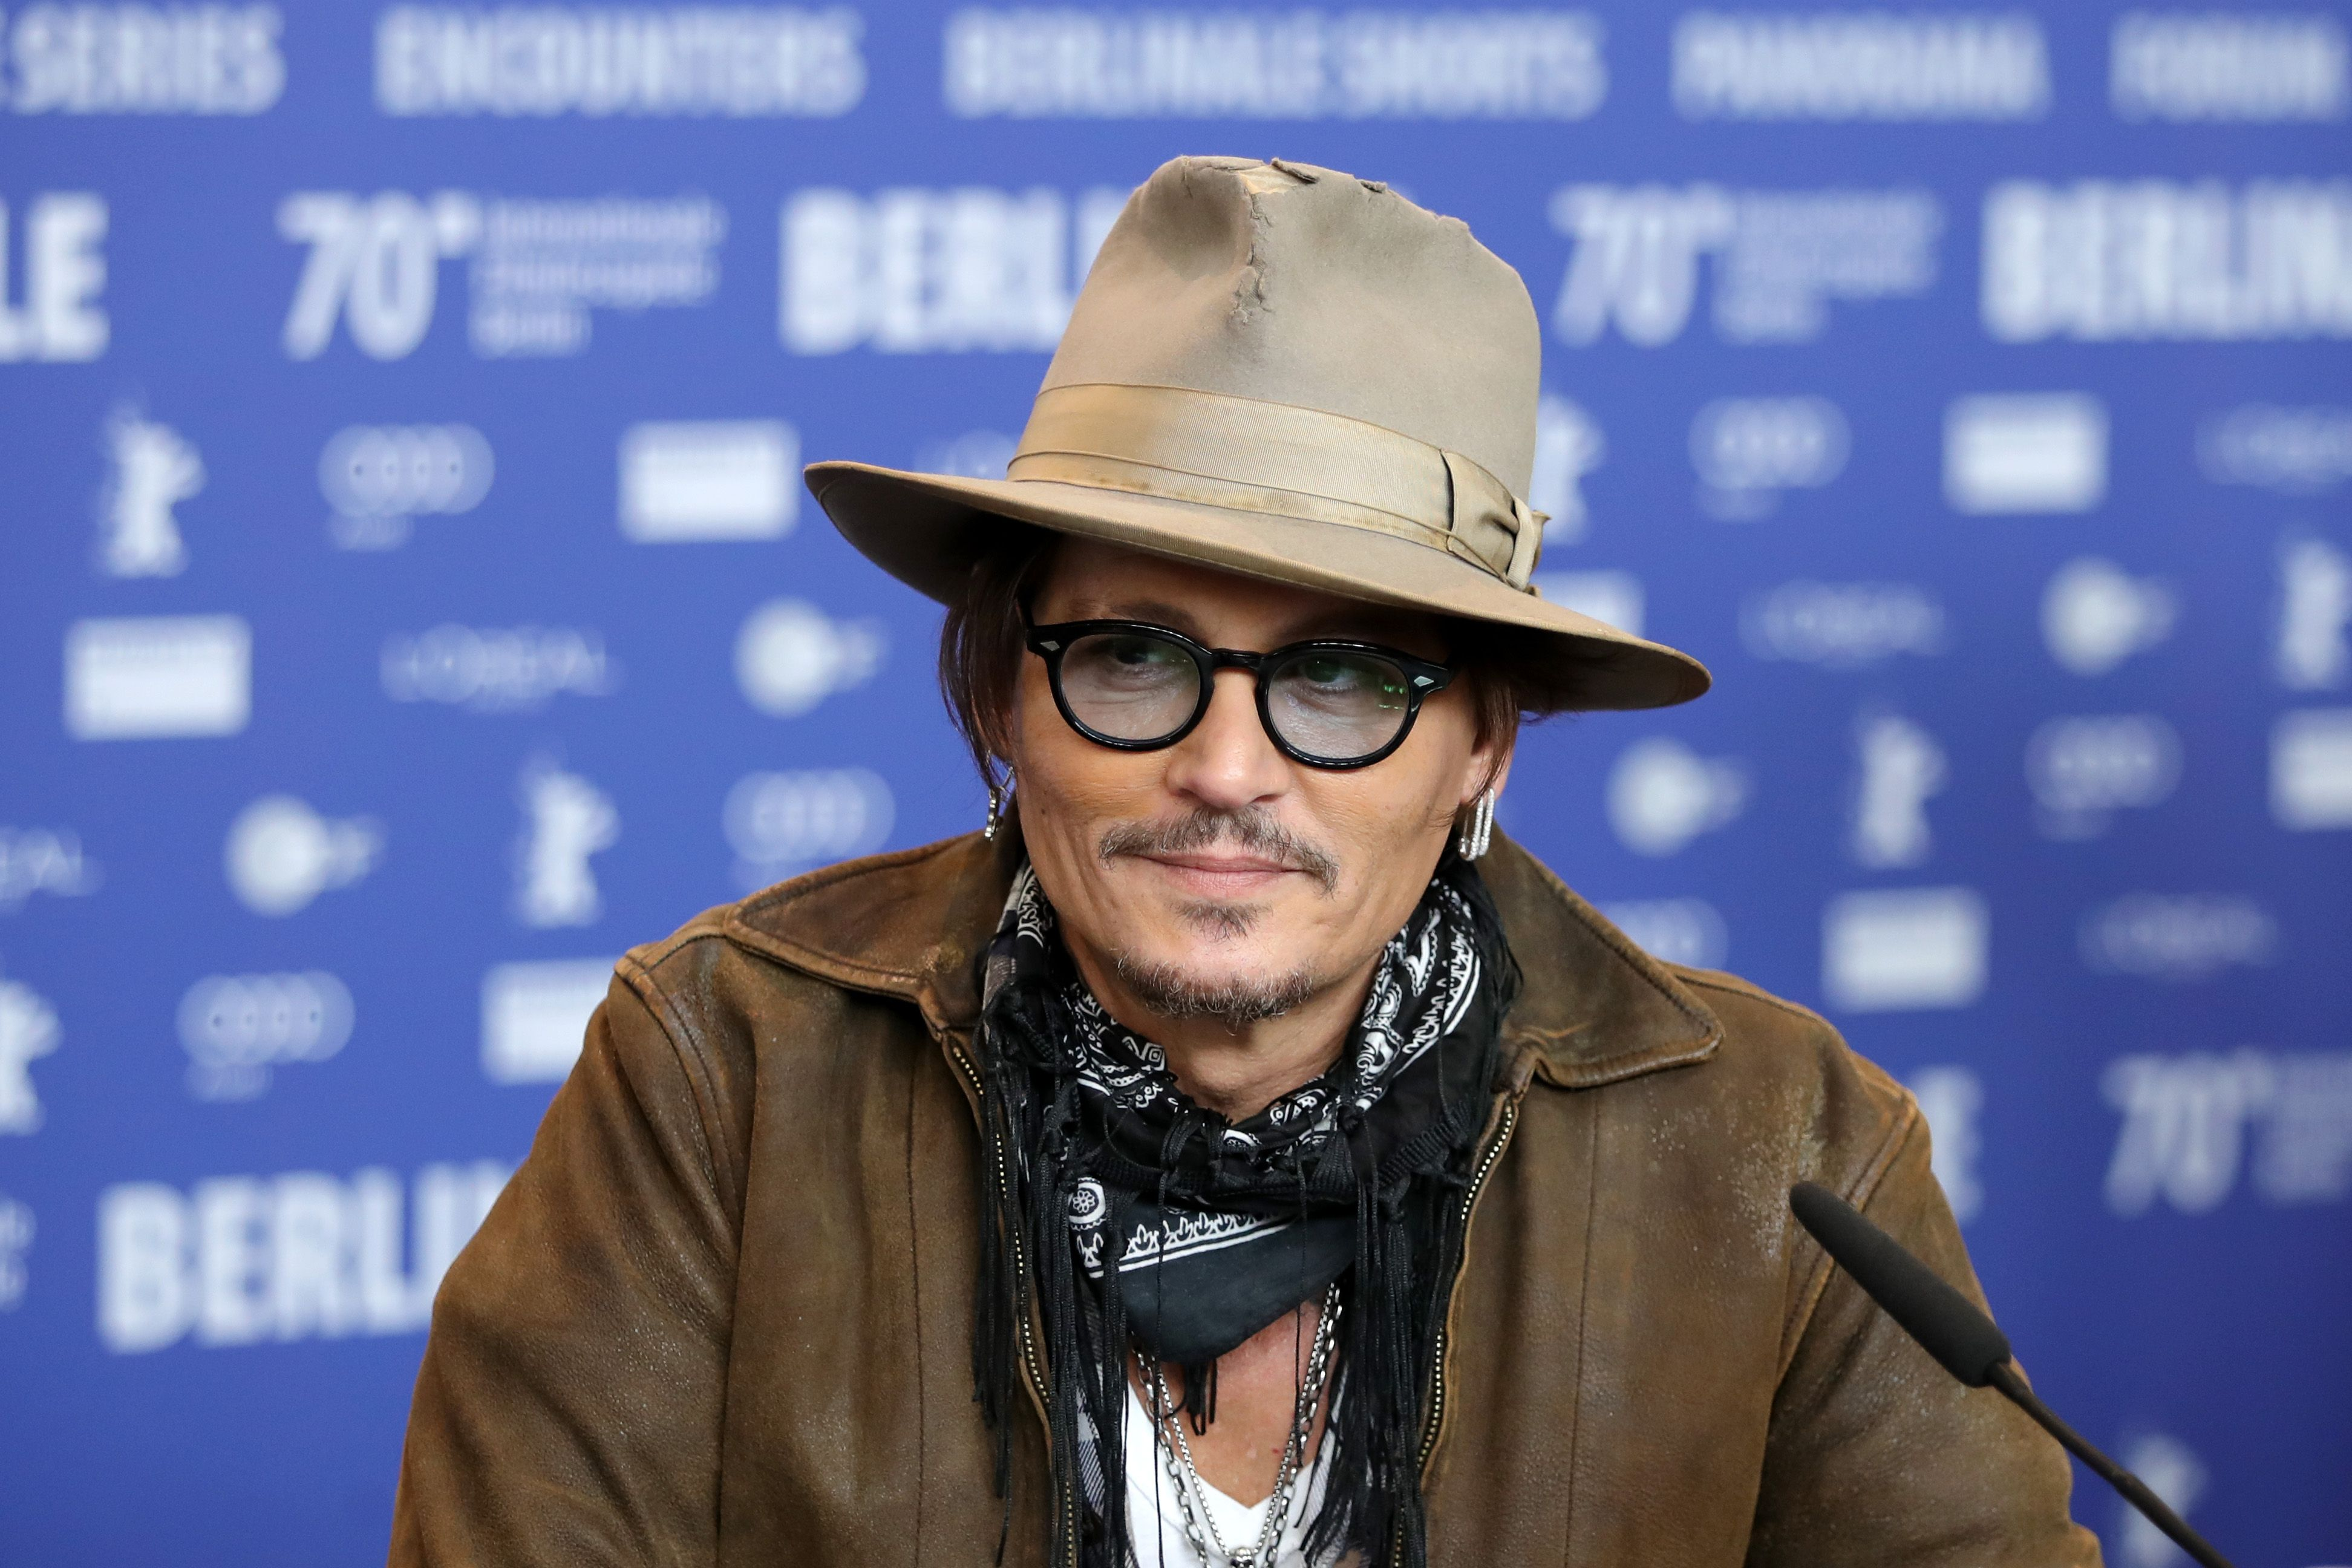 Johnny Depp and his ex-wife Amber Heard settled their divorce in